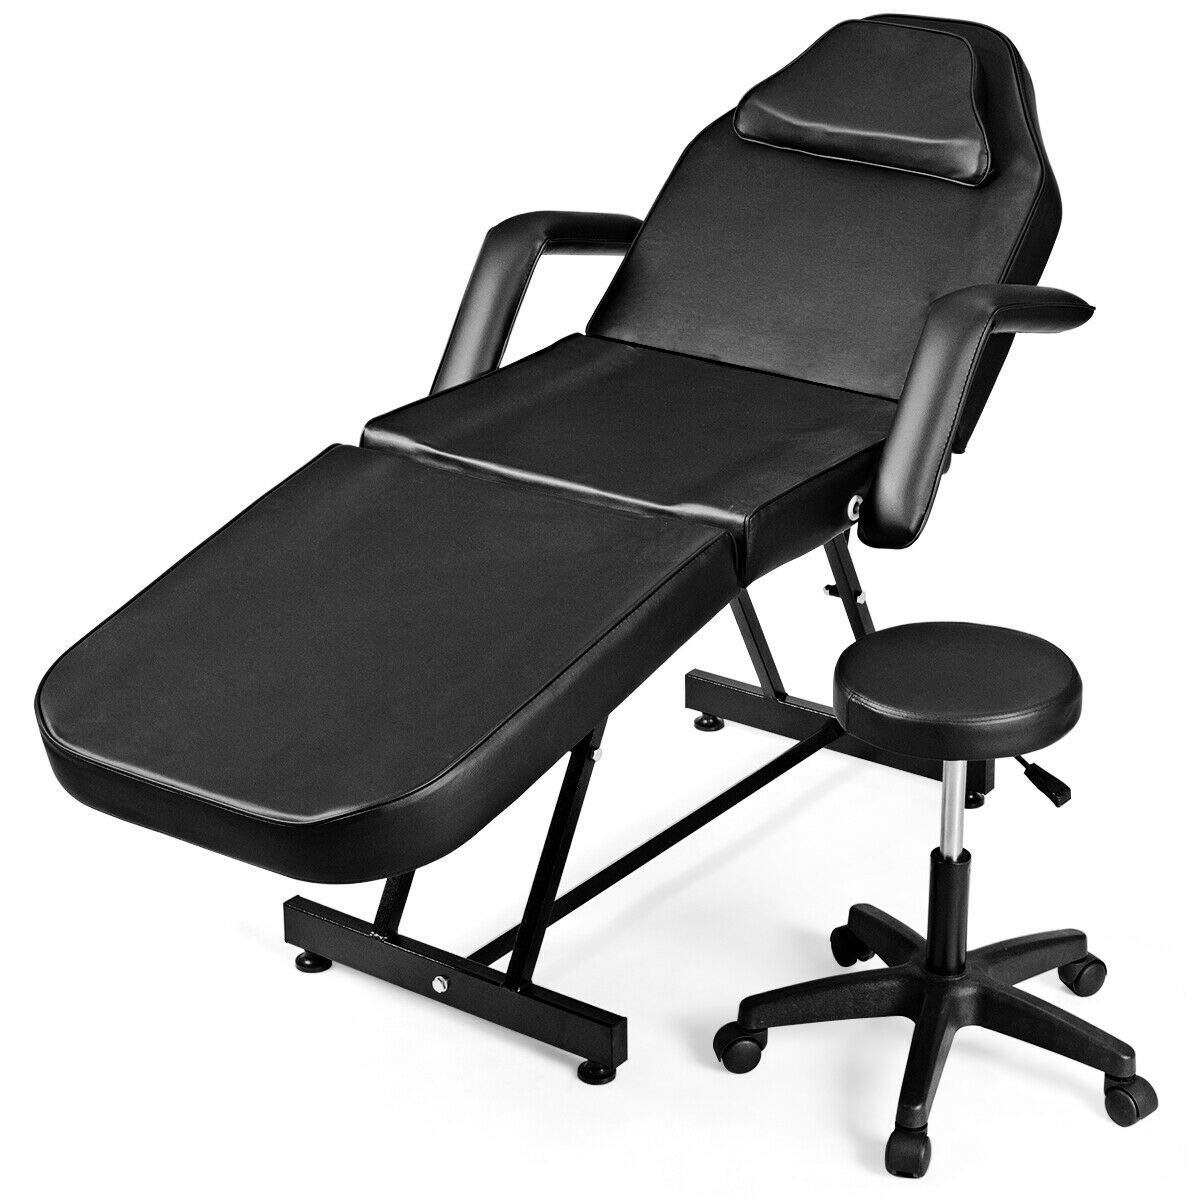 Giantex Massage Table Facial Bed Chair for Spa with Stool, Adjustable Height Portable 73'' Salon Massaging Tables for Barber Face Beauty, Updated Facial Beds and Tattoo Chairs, Black